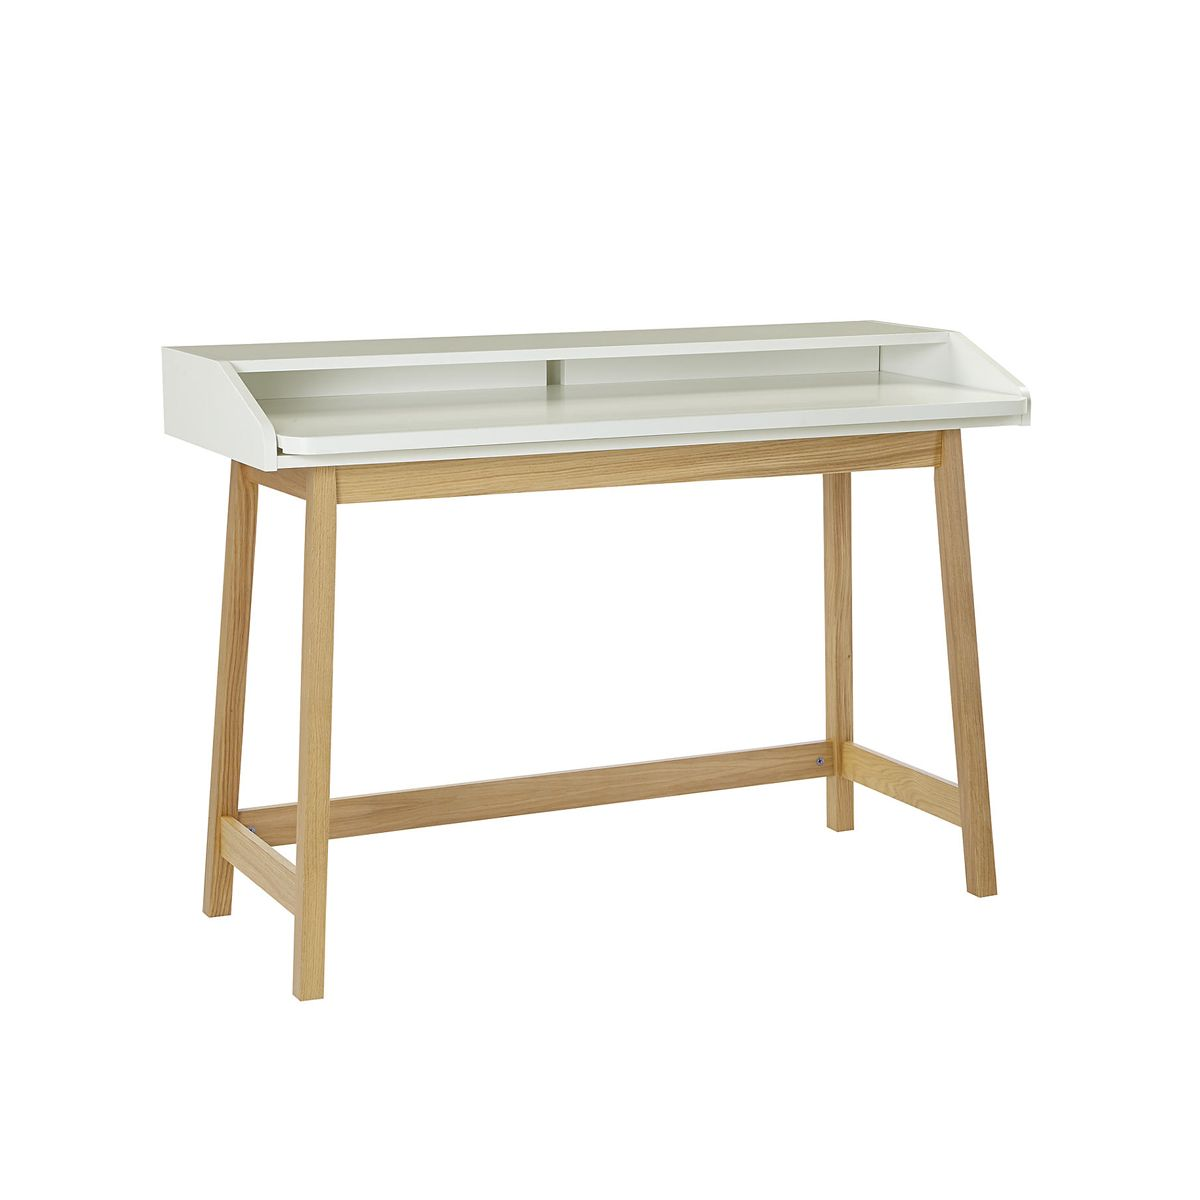 Bureau st james design scandinave de woodman for Bureau style scandinave